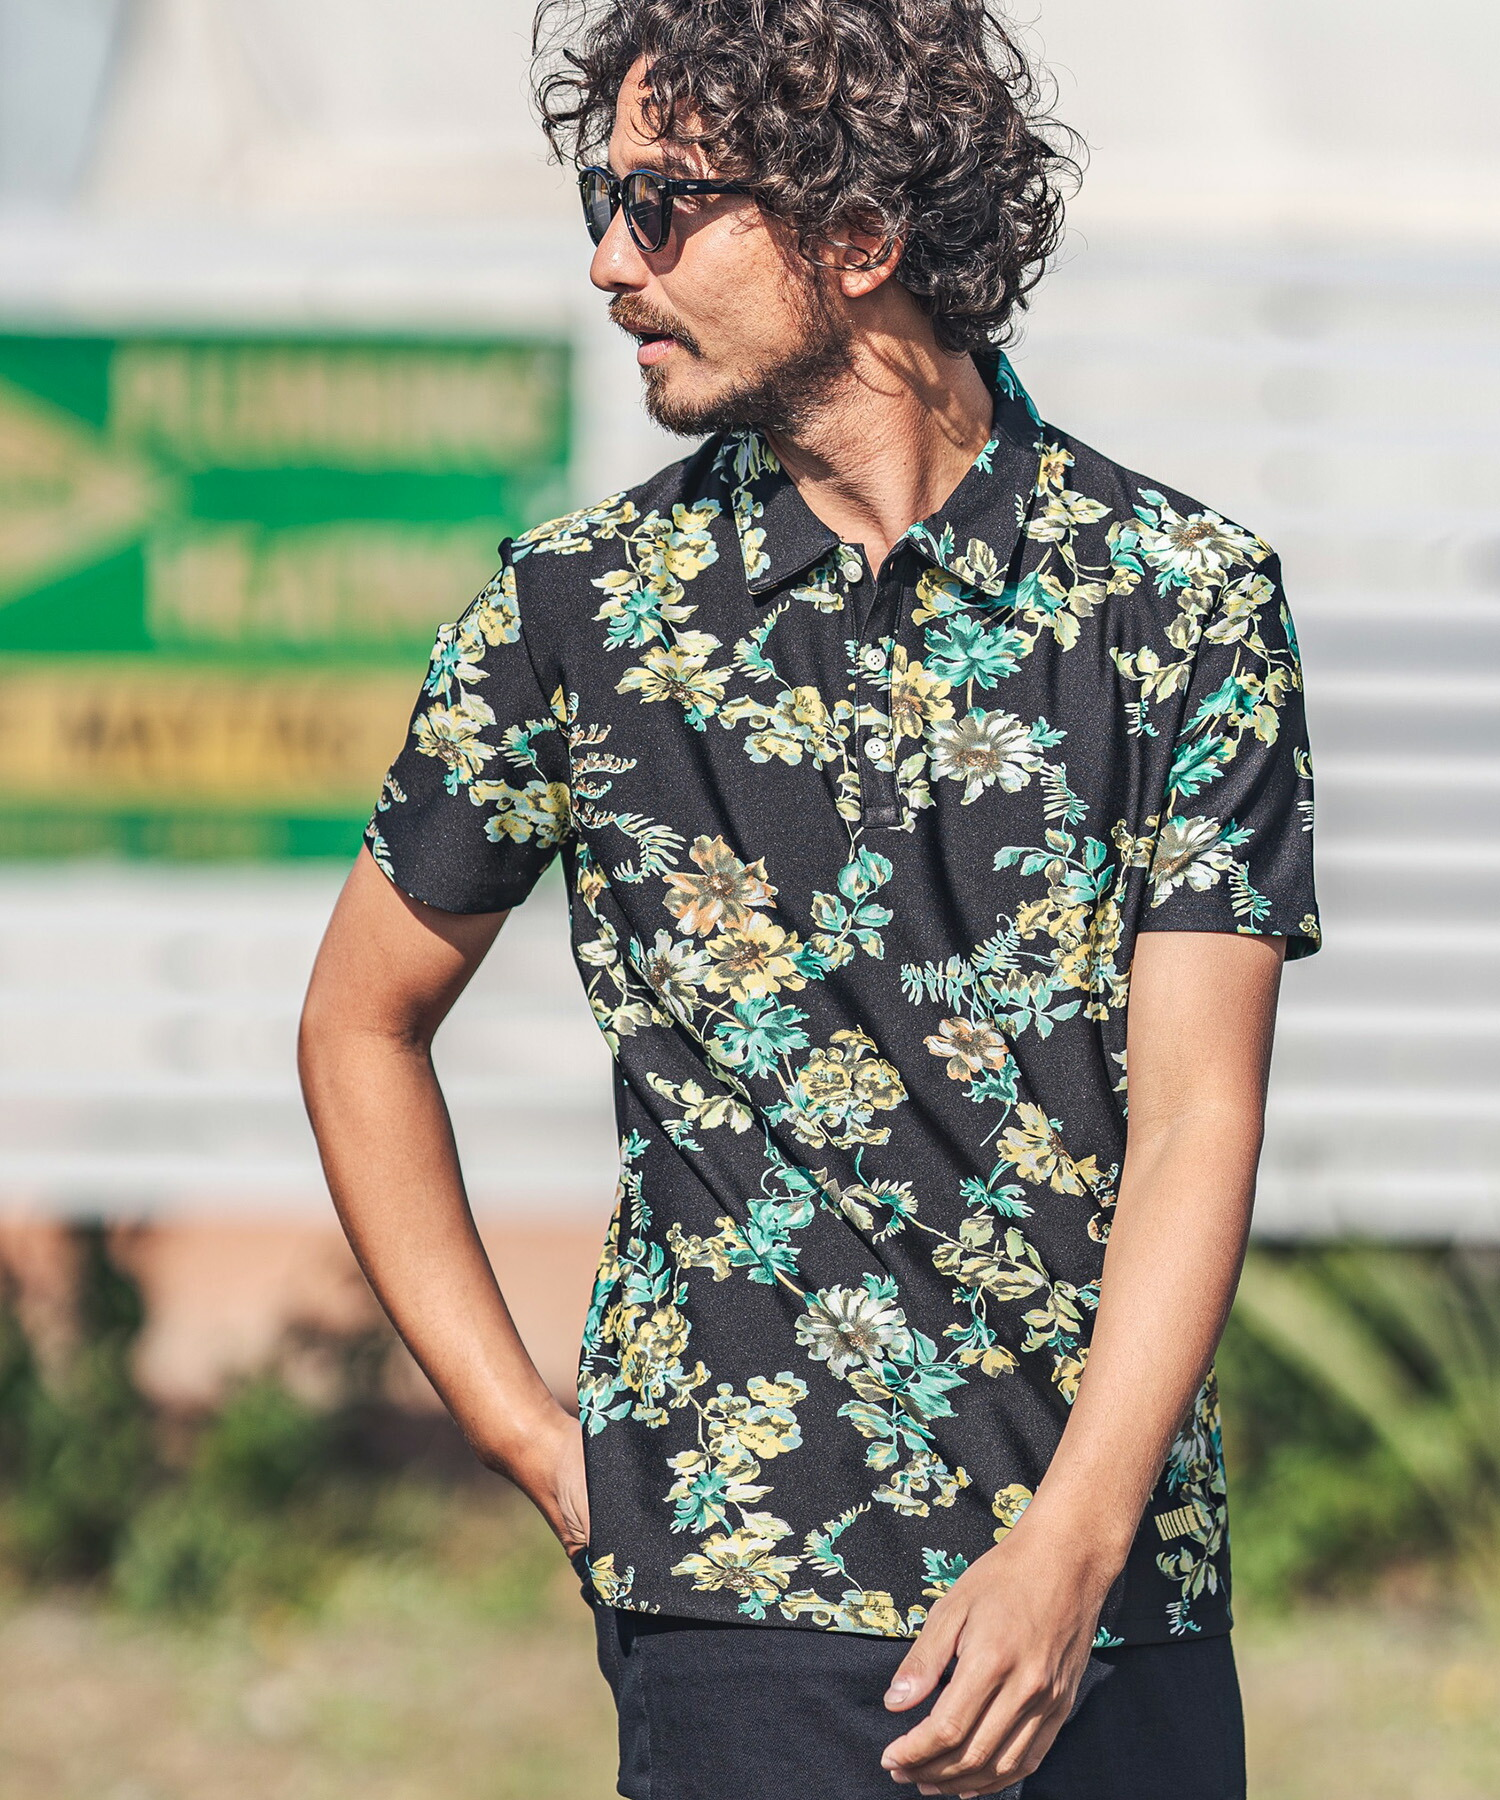 【felkod(フィルコッド)】Flower Motif Cool Touch Fabric Polo Shirts ポロシャツ(F21S100)